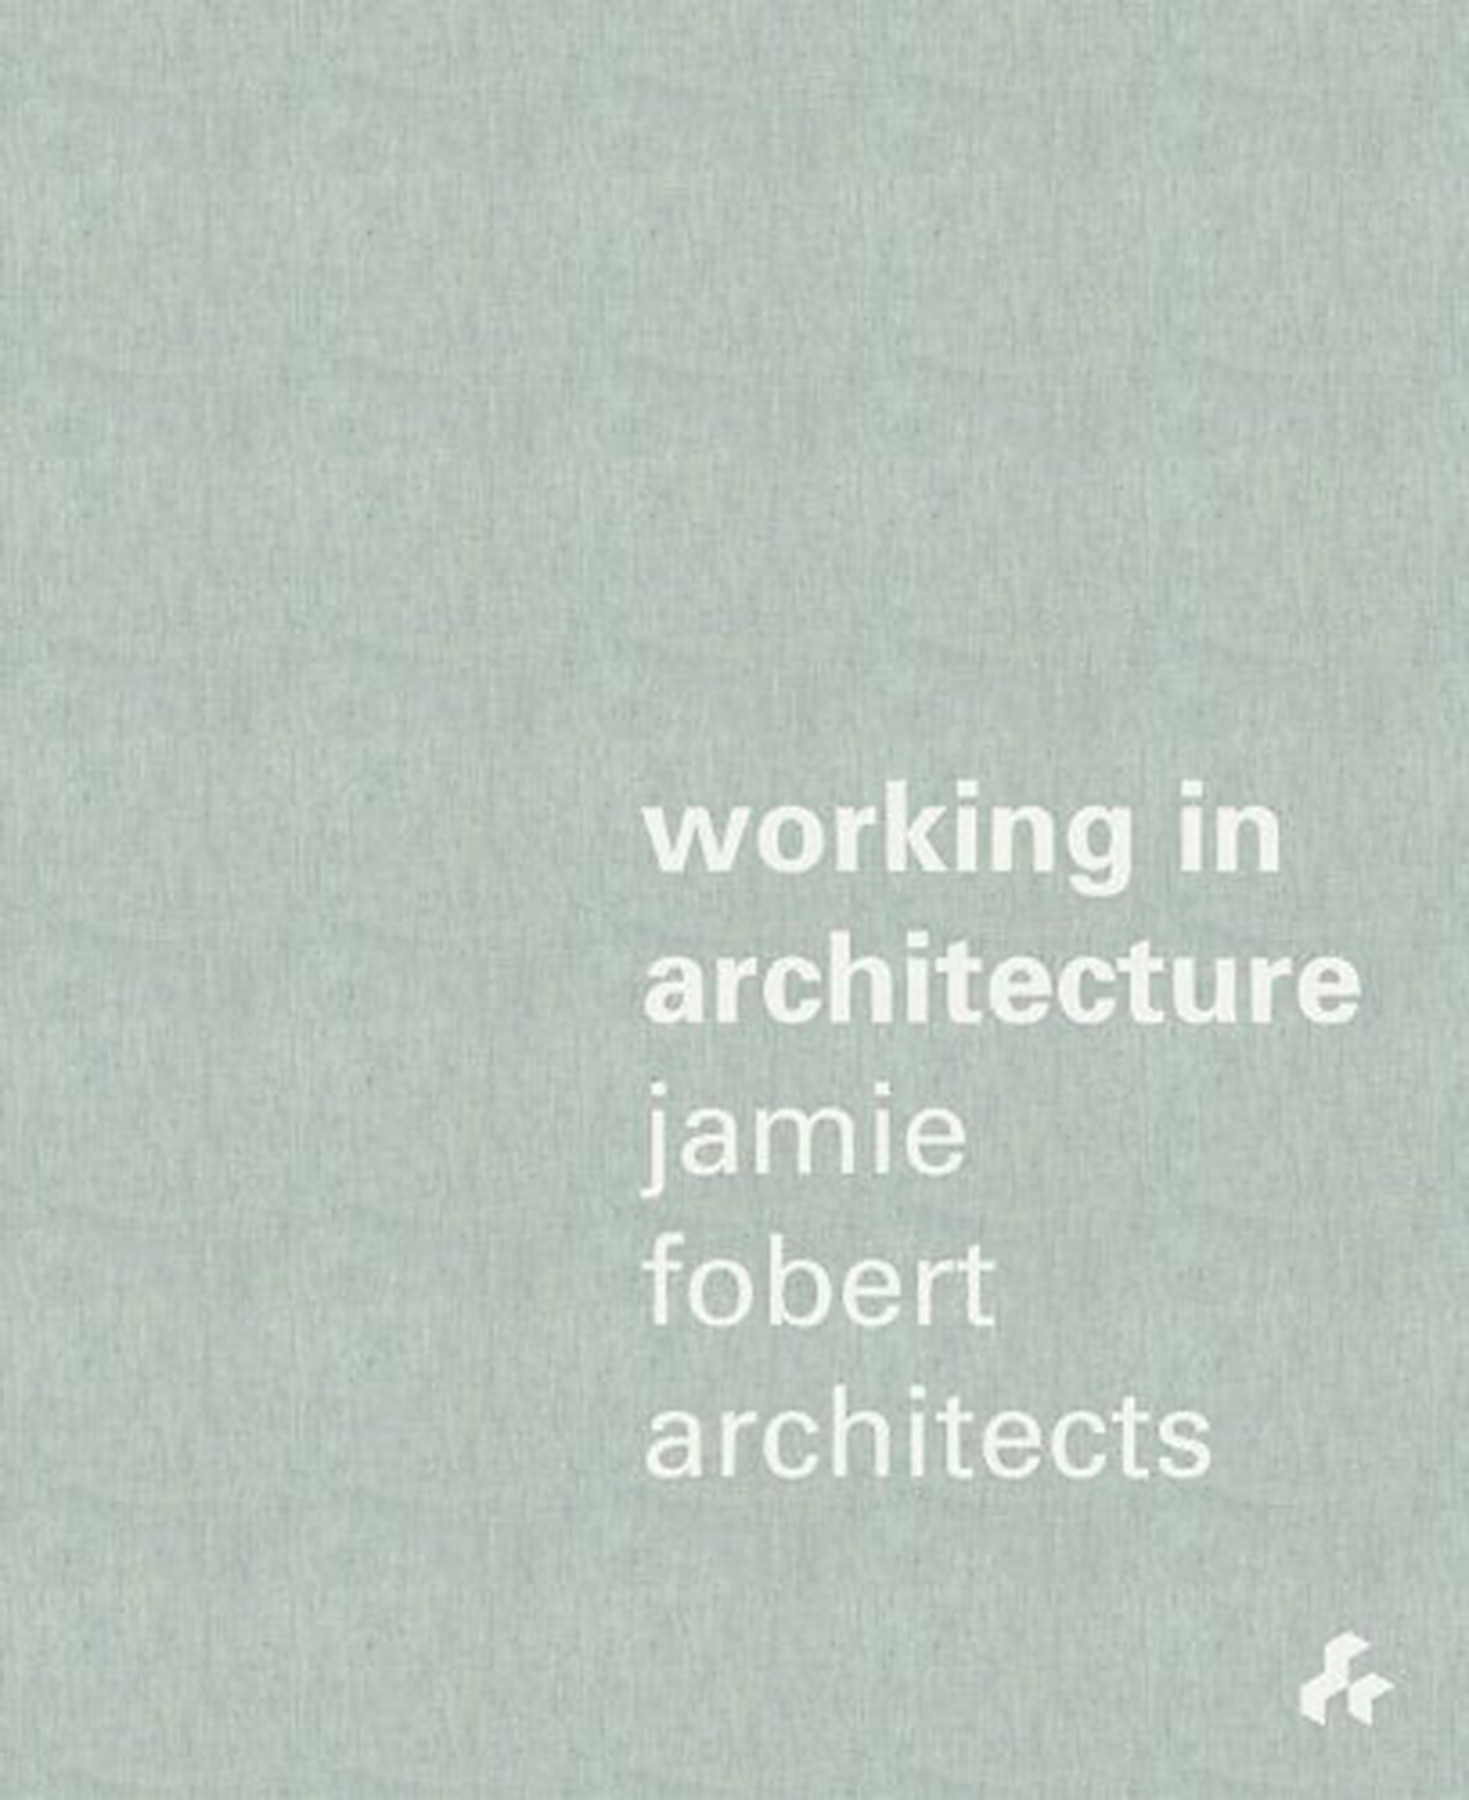 Working-in-Architecture-Jamie-Fobert-Architects-book-cover-demo